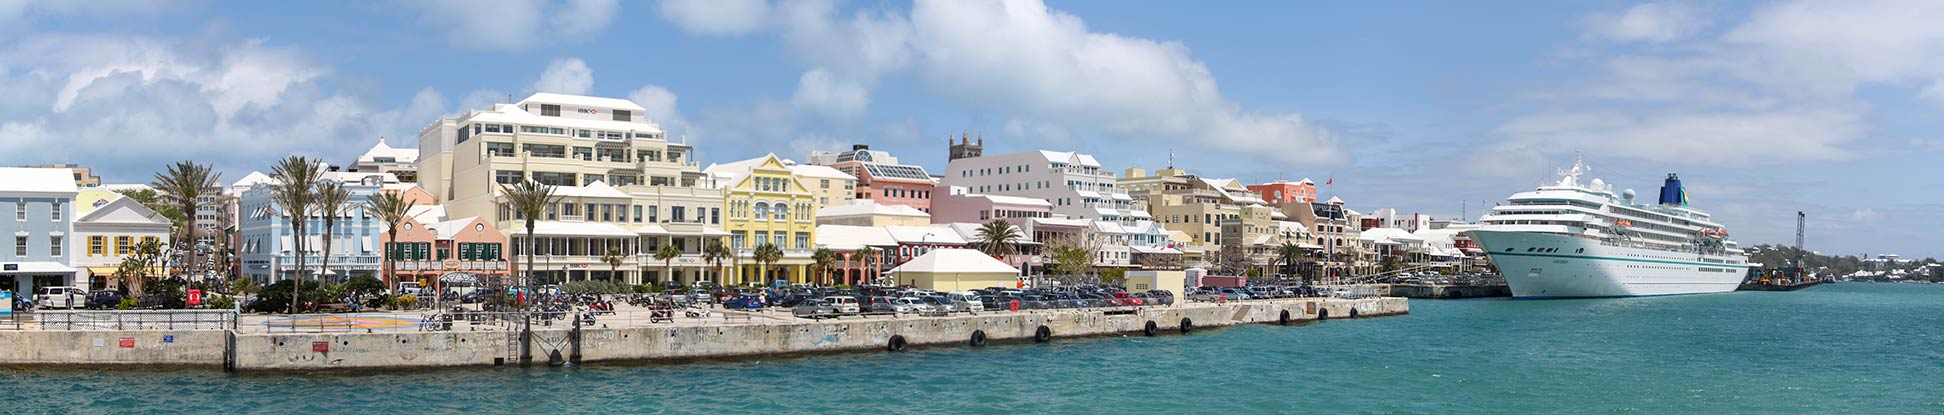 Hamilton Bermuda with cruiseship as seen from ferry